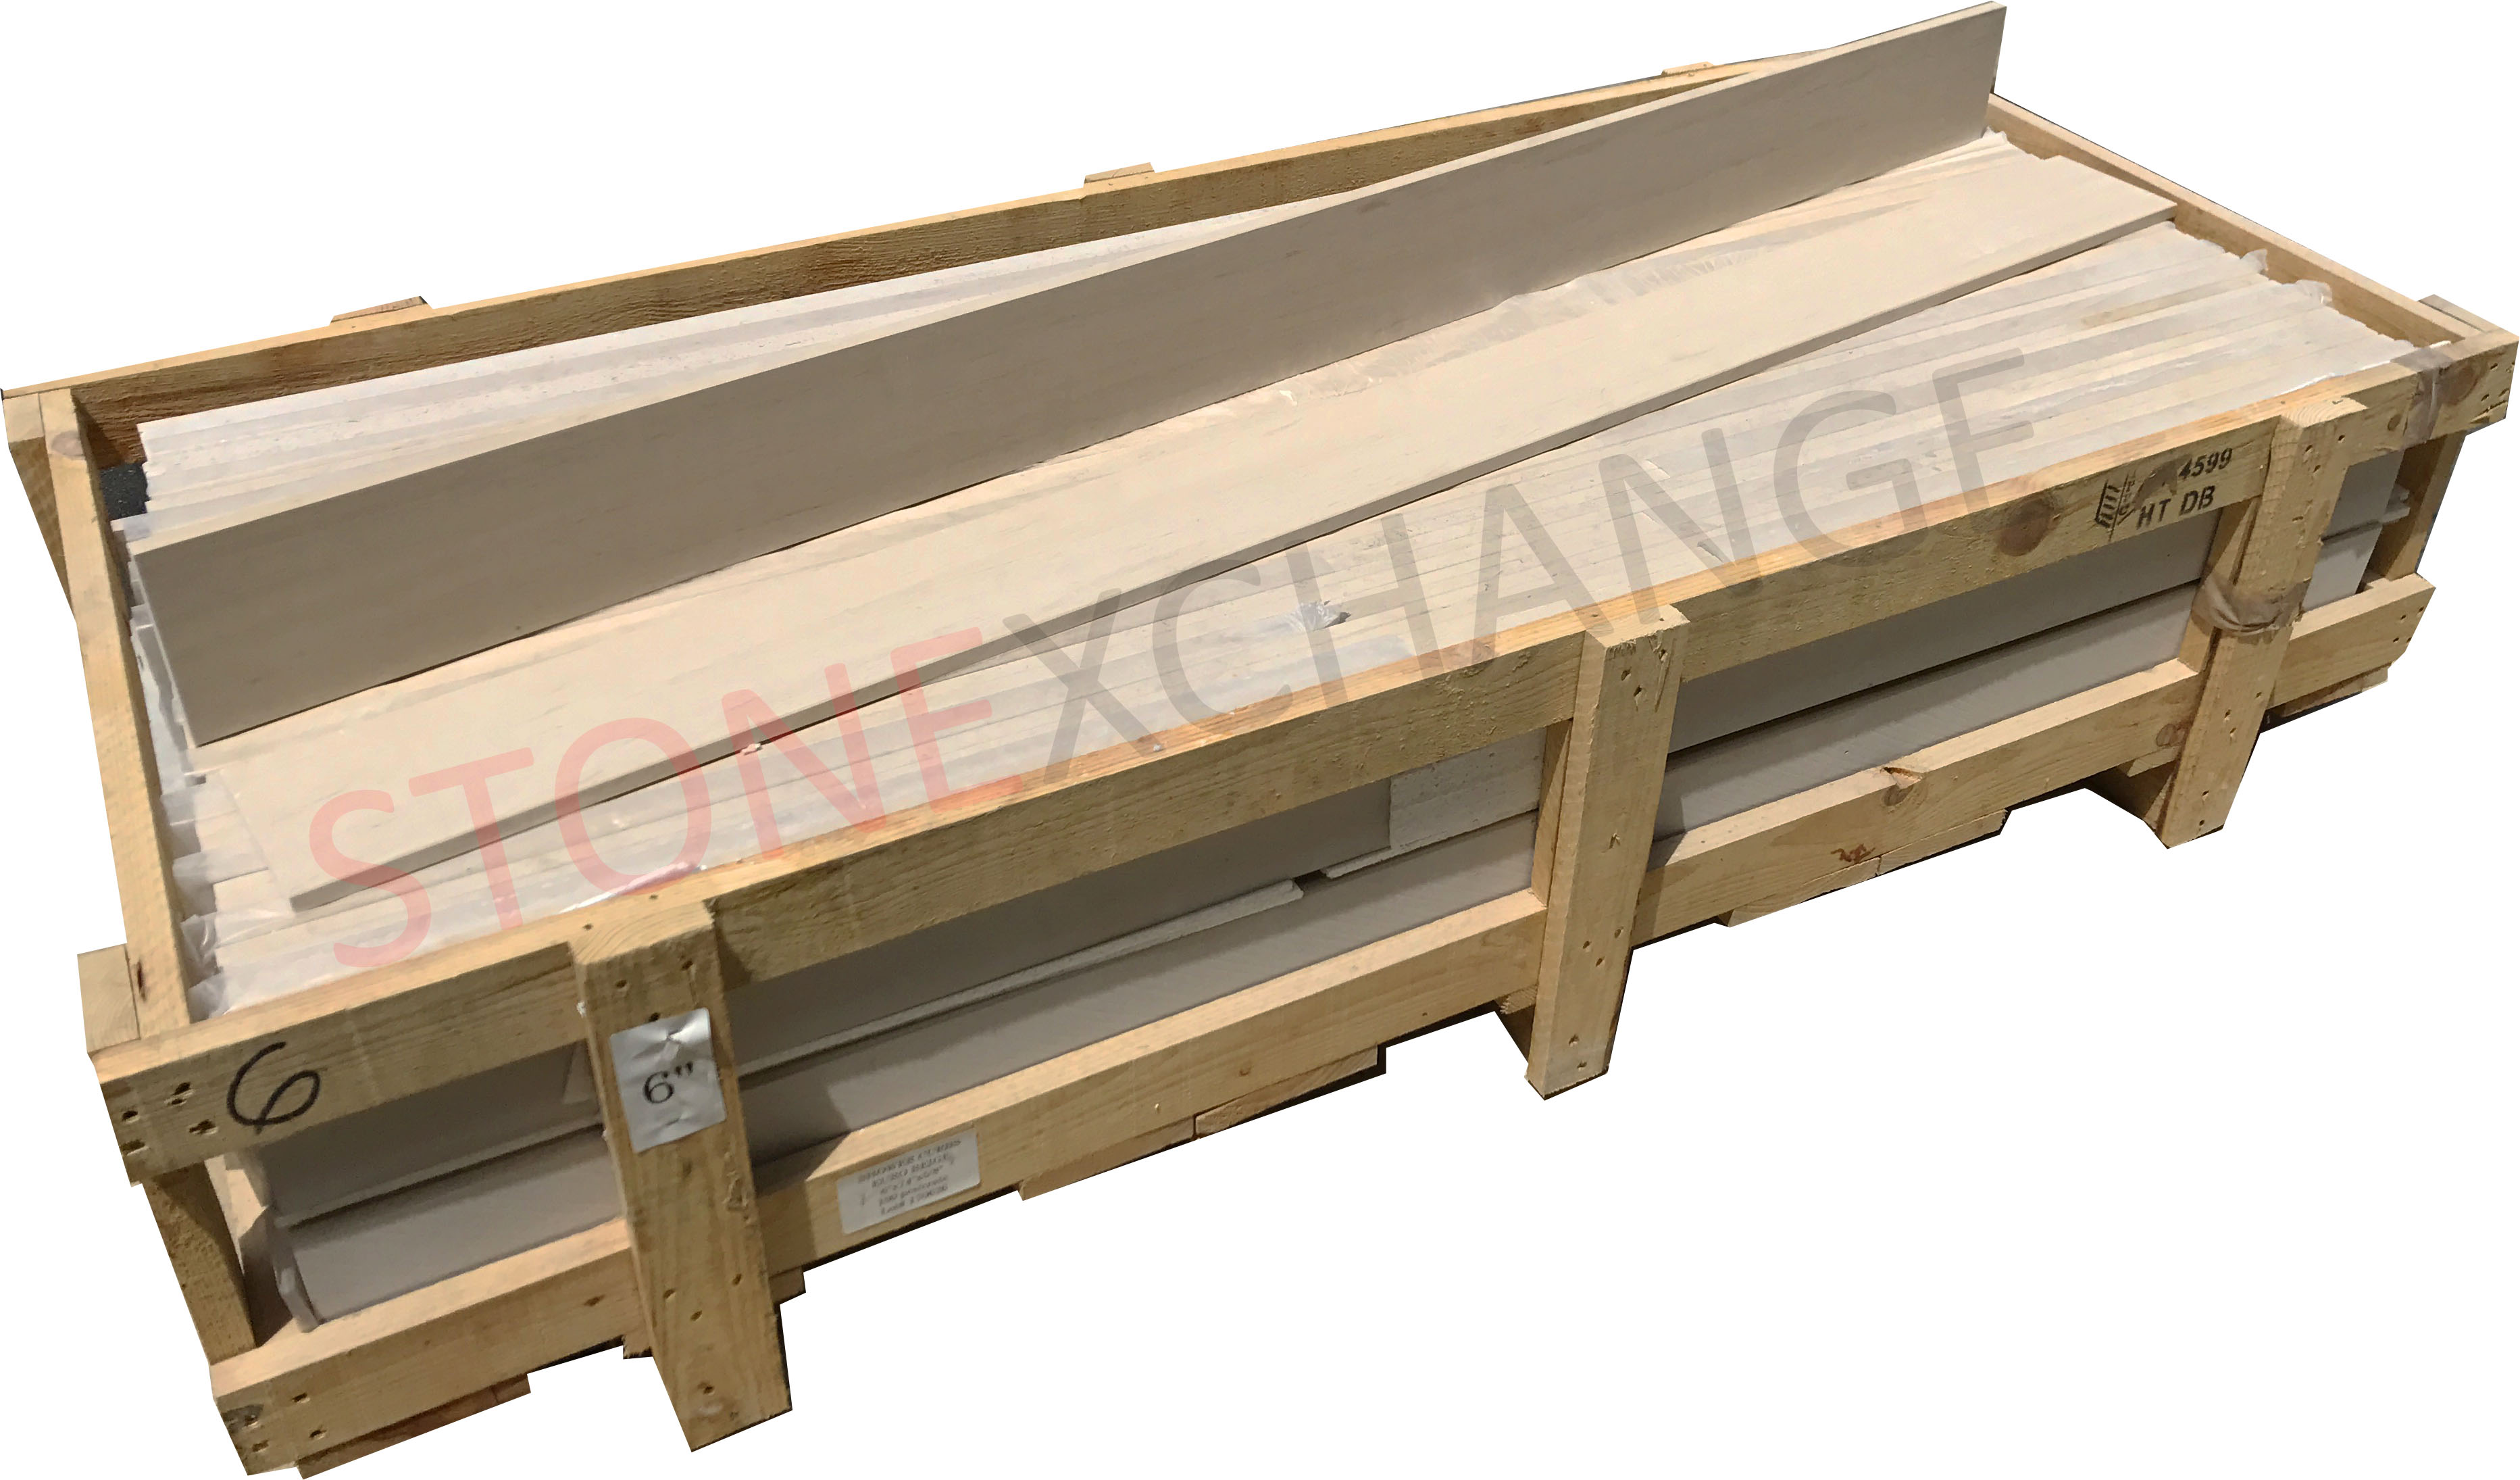 Euro Beige Stone Sills Crate Photo Main